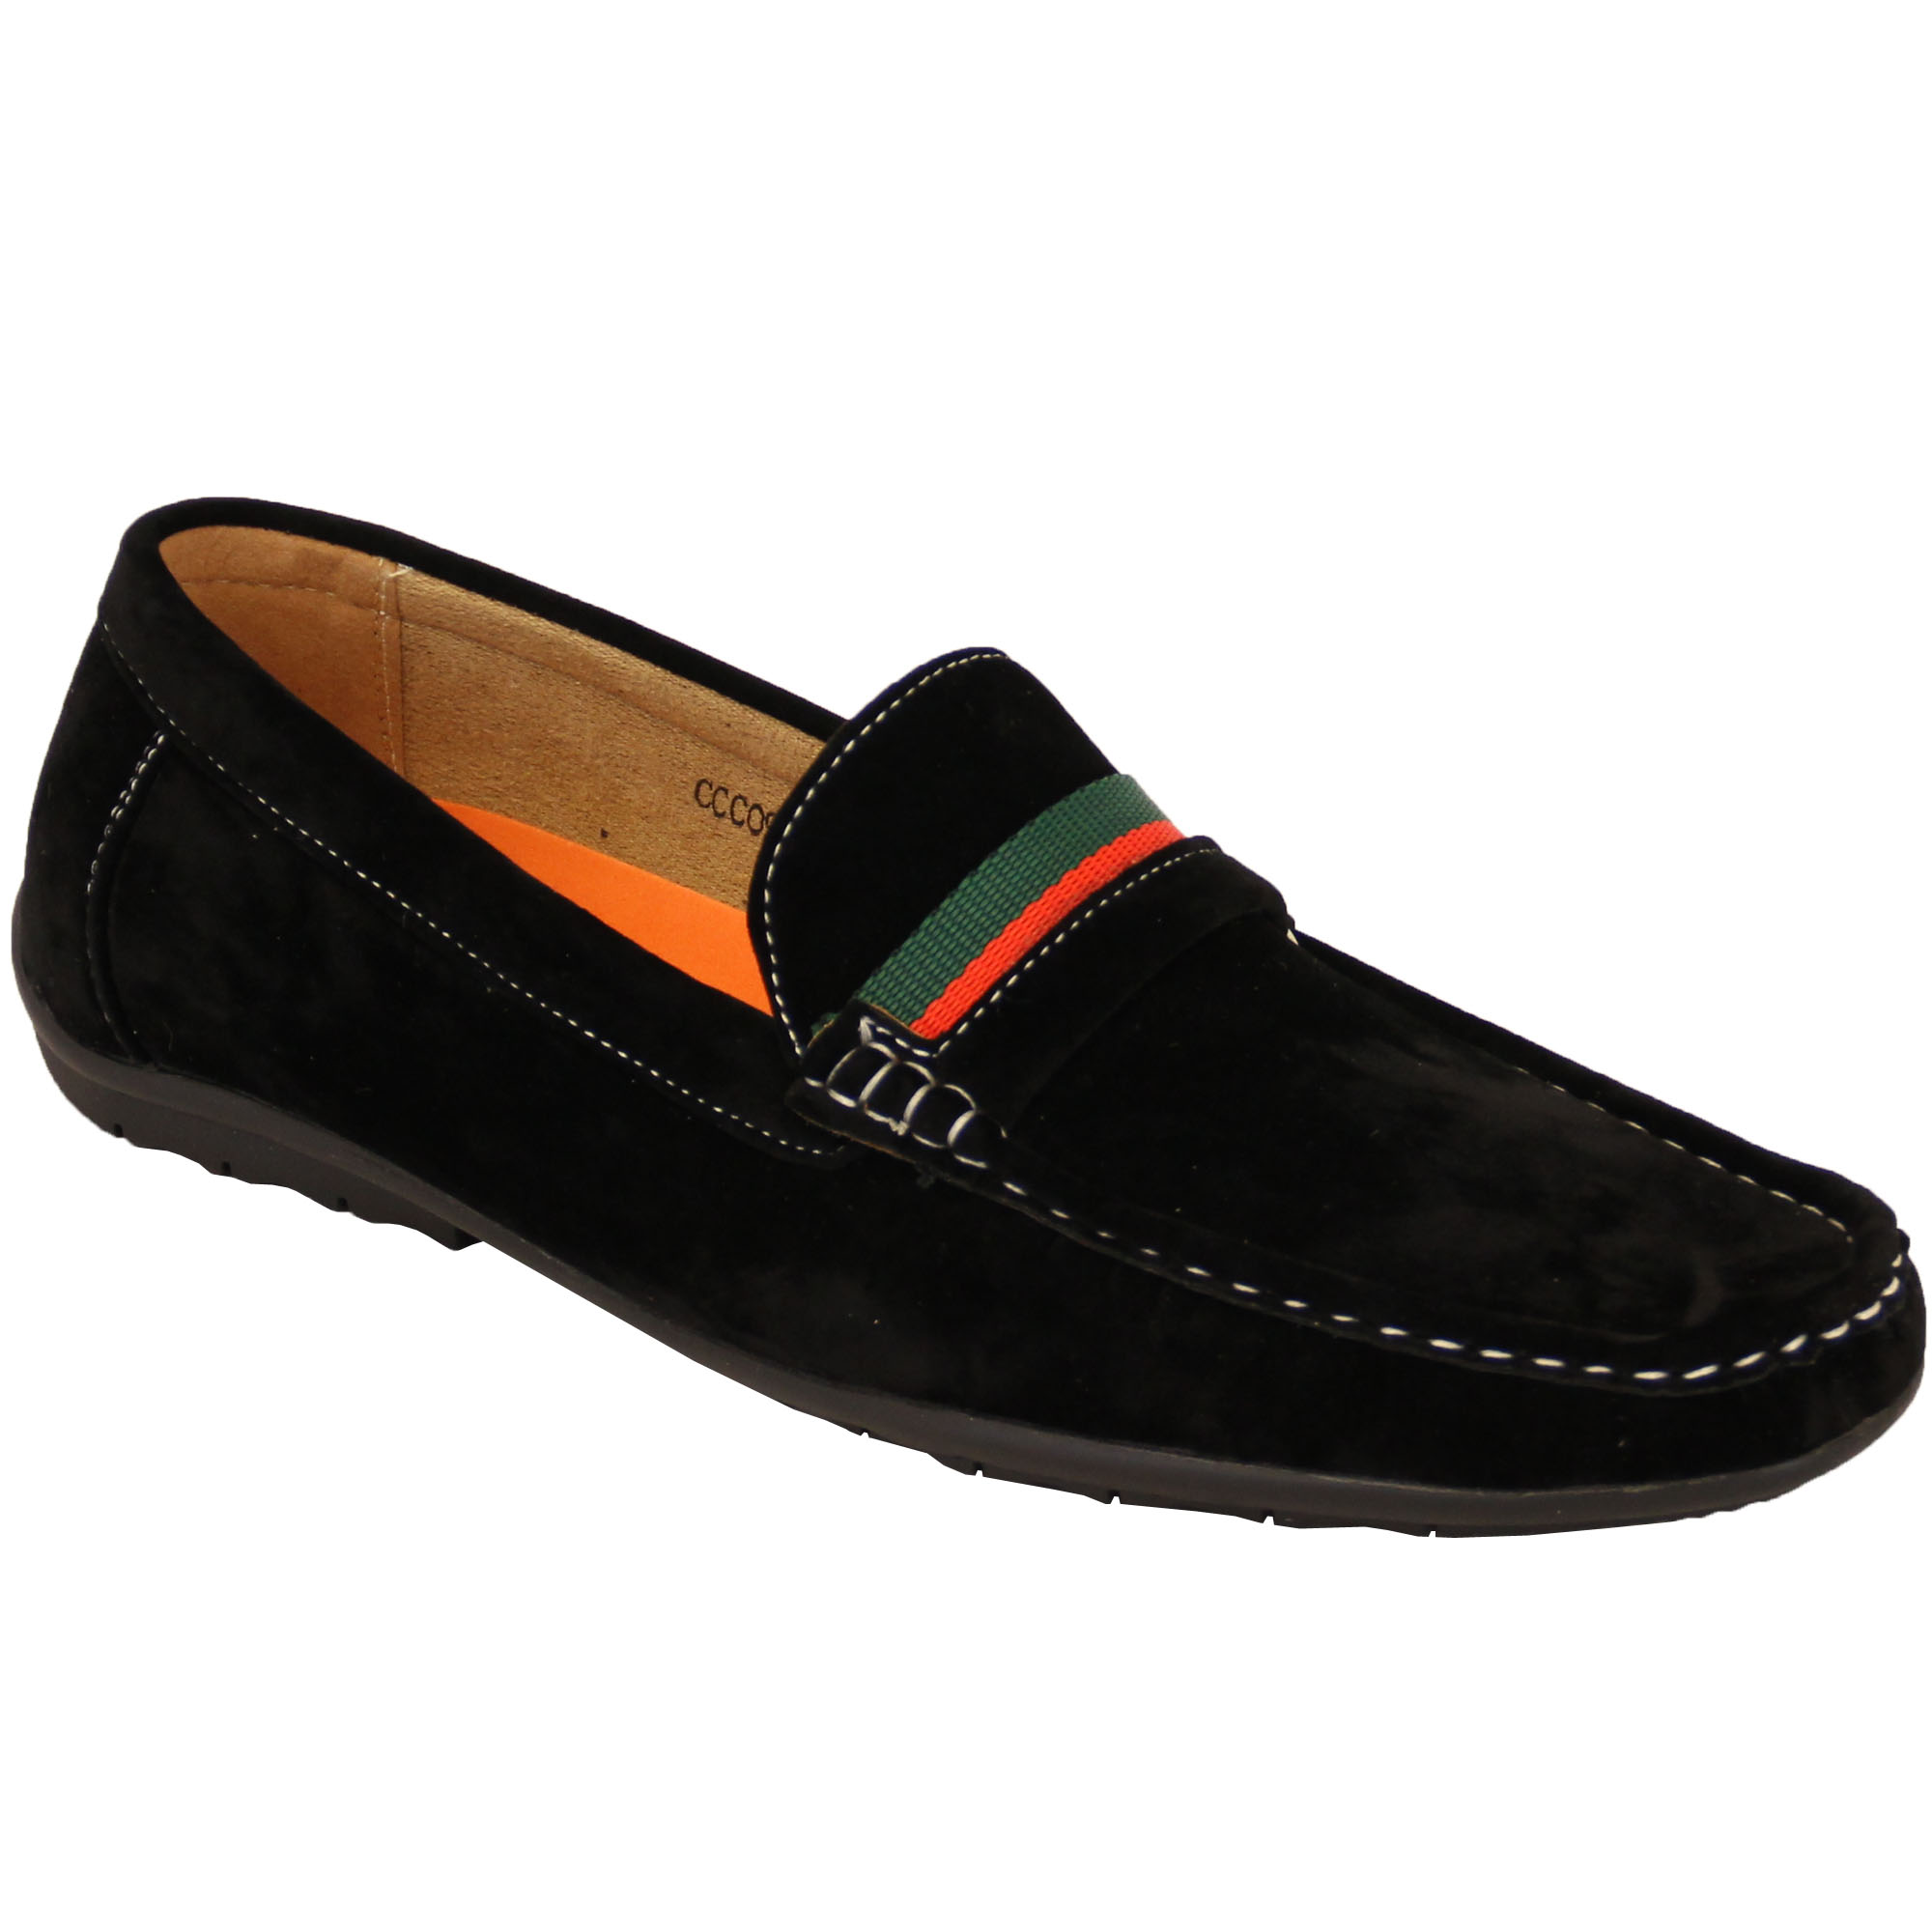 Mens-Moccasins-Suede-Look-Driving-Loafers-Slip-On-Boat-Shoes-Ribbon-Tassle-New thumbnail 2